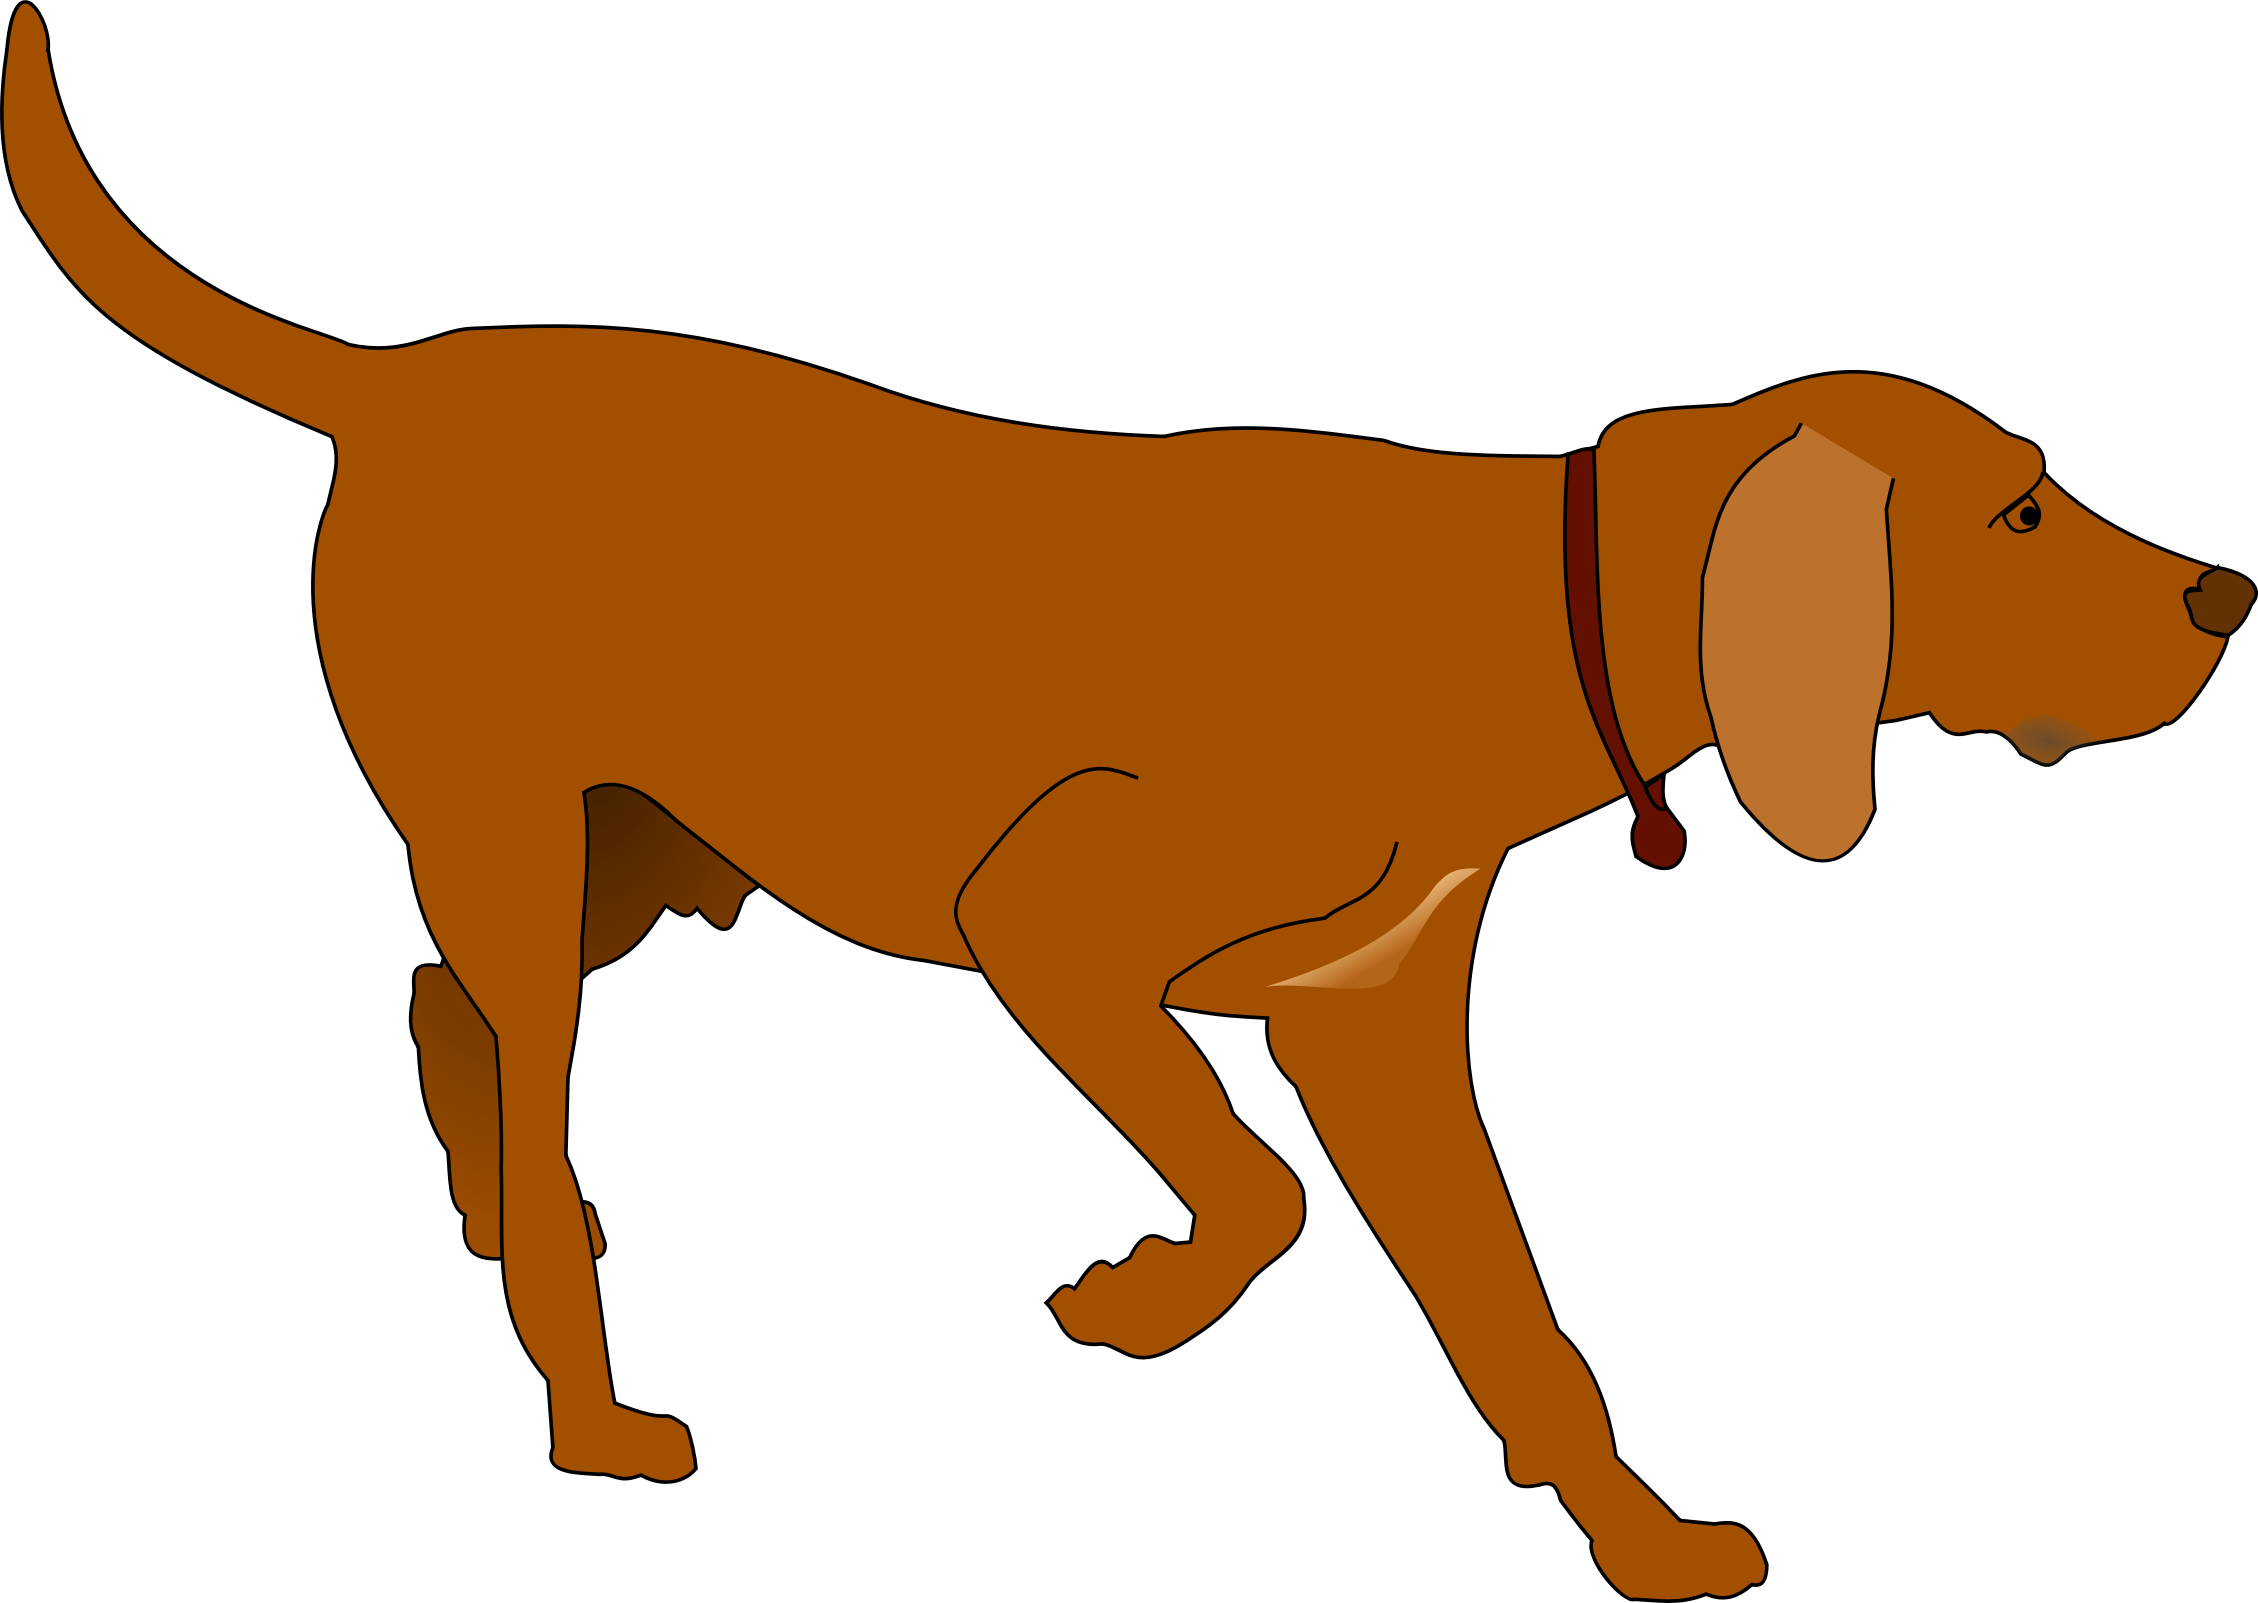 Dog clipart vector vector transparent stock Hunting Dog Vector Clipart image - Free stock photo - Public Domain ... vector transparent stock